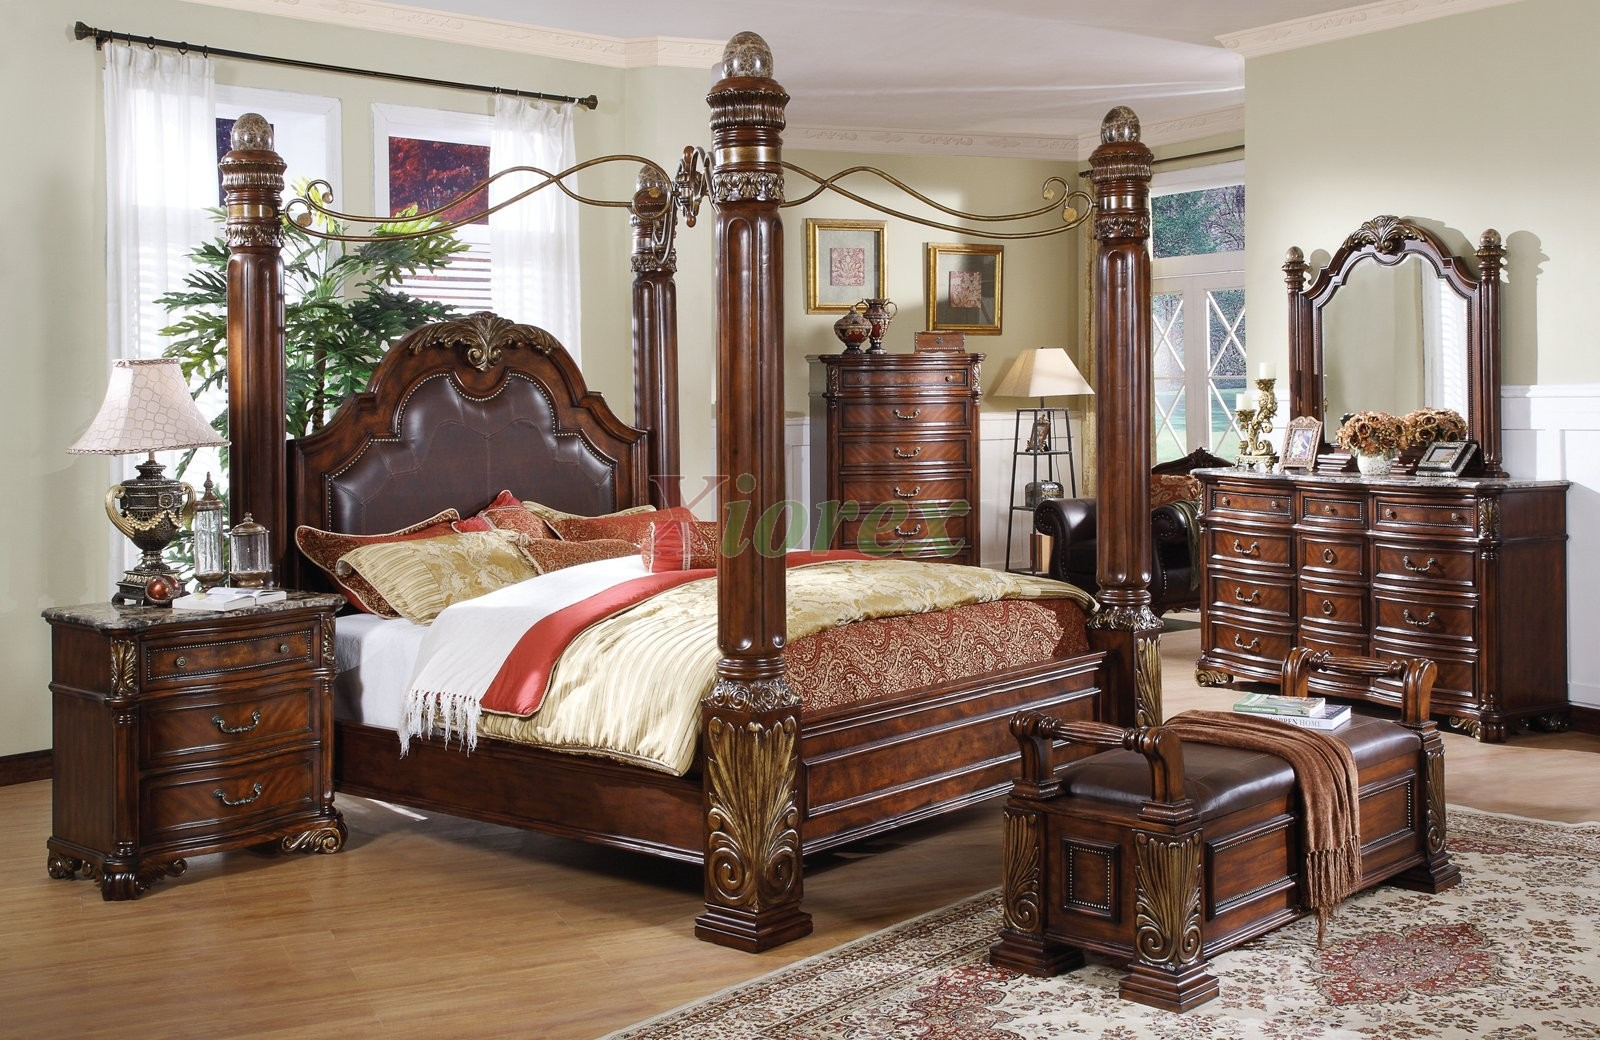 Canopy bed sets bedroom furniture sets w poster canopy for Bedroom furniture set